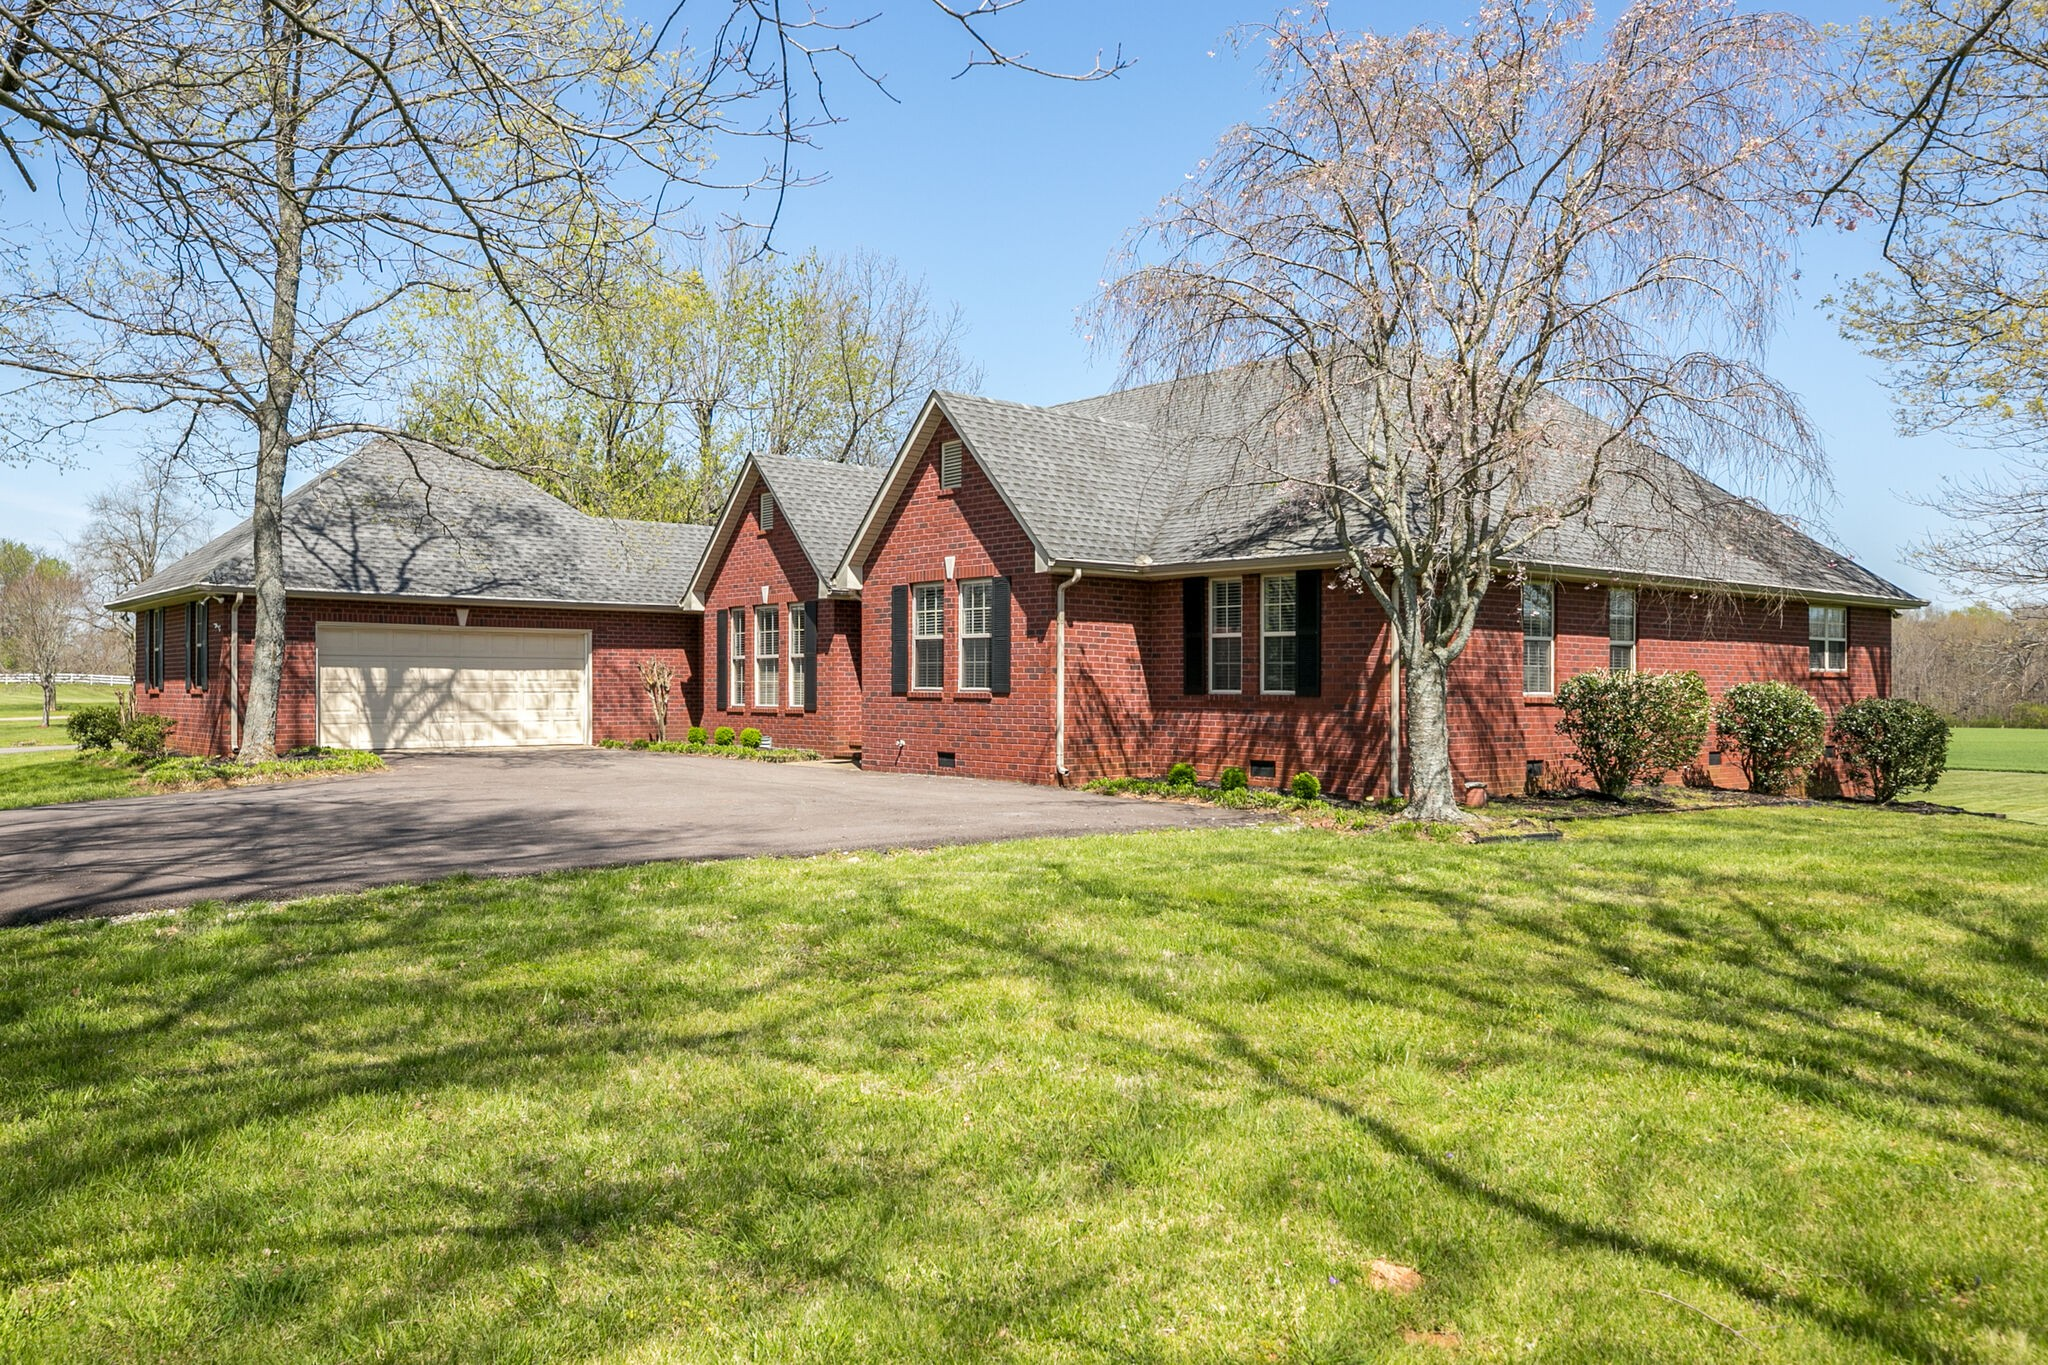 3428 Midland Rd Property Photo - Shelbyville, TN real estate listing